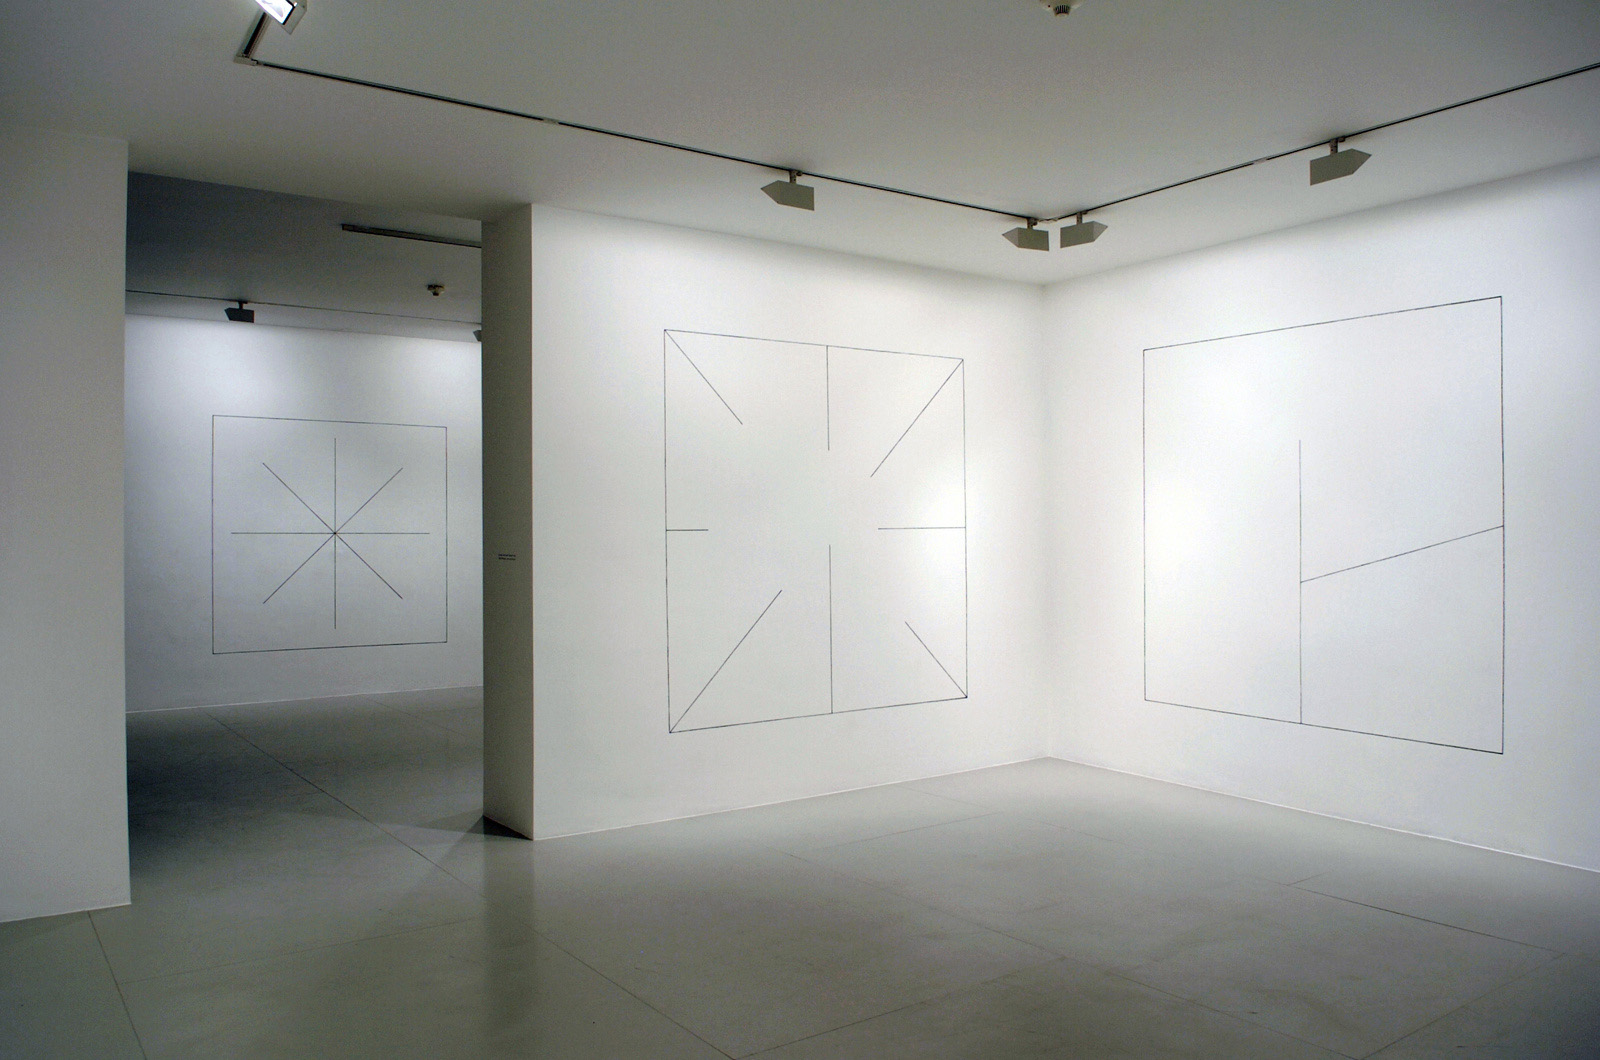 Minimalism - contemporary art examples